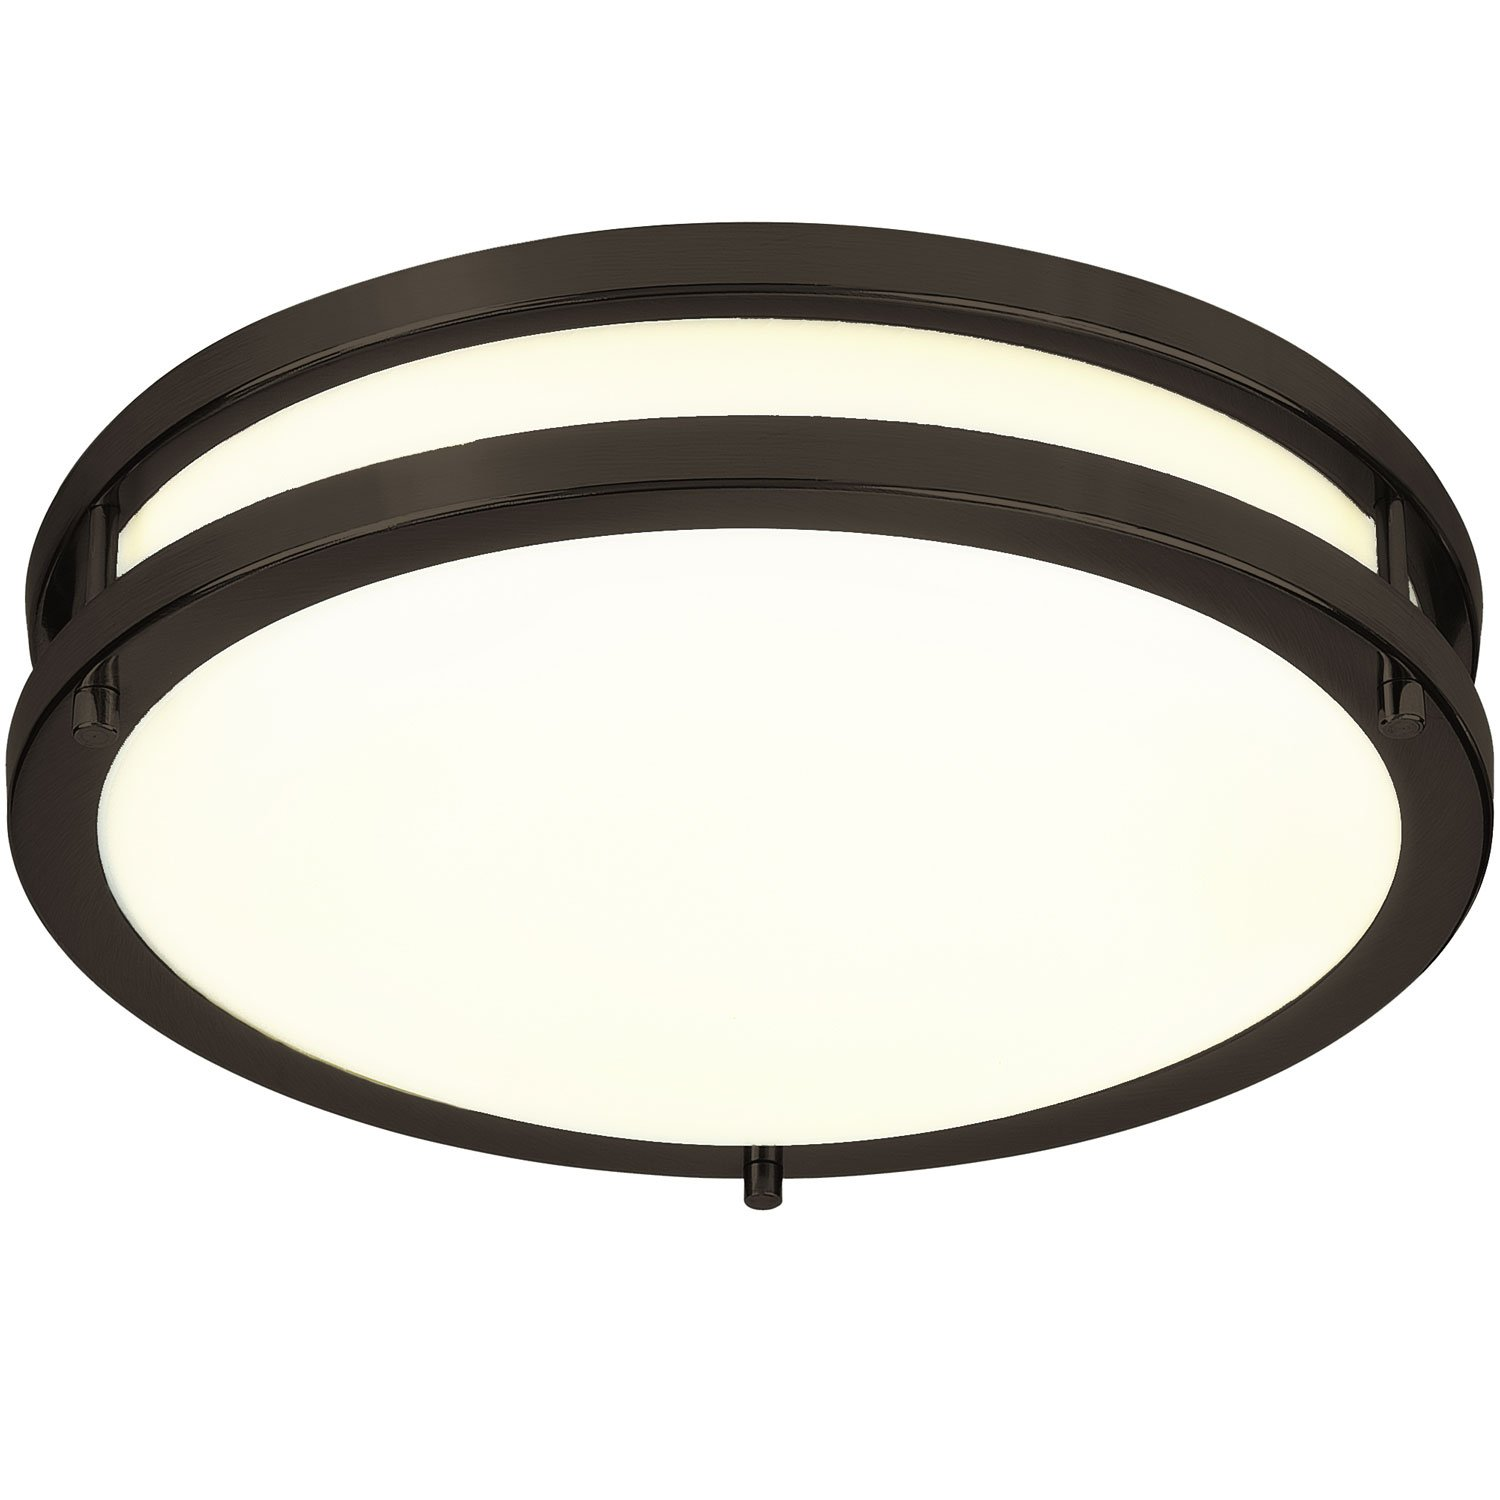 LB72120 12-Inch LED Flush Mount Ceiling Light, Oil Rubbed Bronze, 3000K Warm White, 1050 Lumens, Dimmable by Light Blue USA